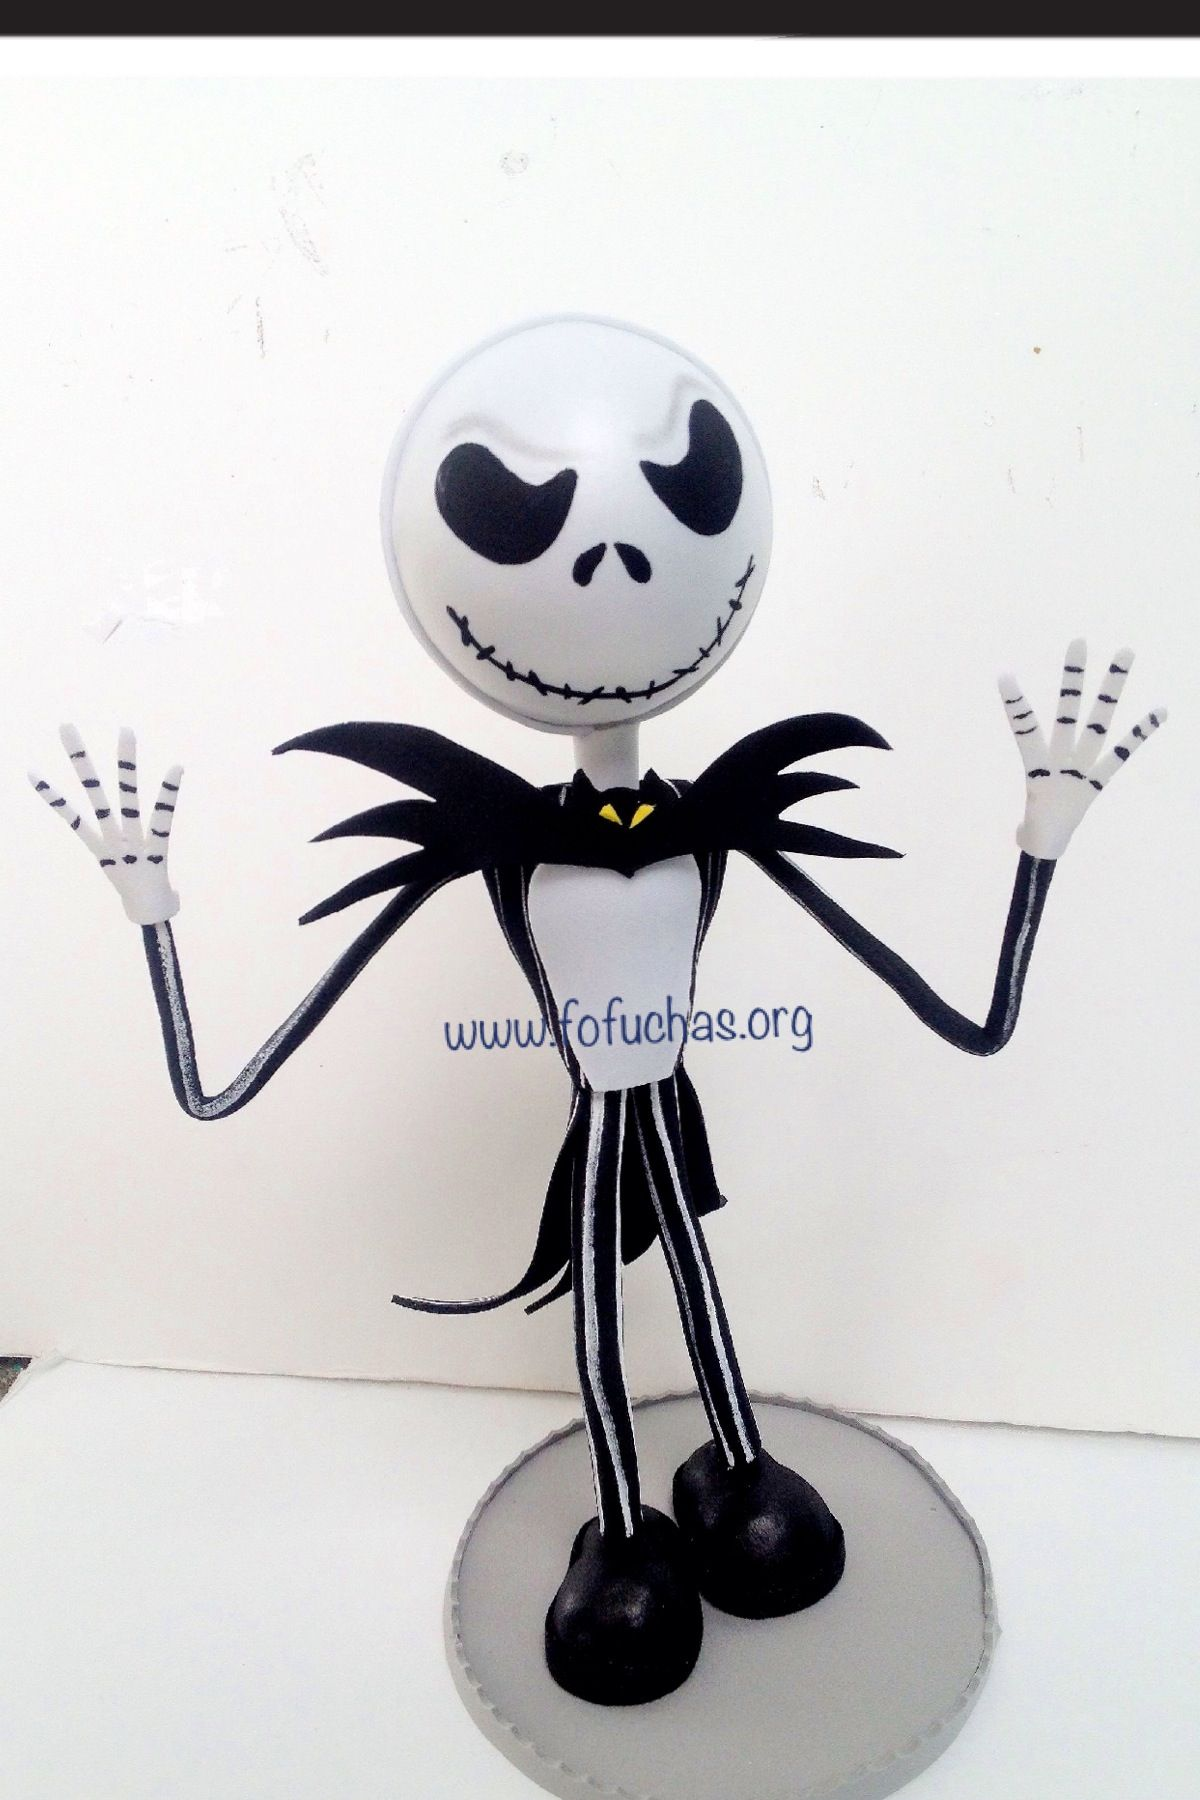 Jack Skellington Fofucho doll. He is handmade using foam sheets. He stands 11 inches. He would be a great collection piece. To purchase visit fofuchas.org or like us at facebook.com/fofuchashandmadedolls #JackSkellington #foam dolls #crafts